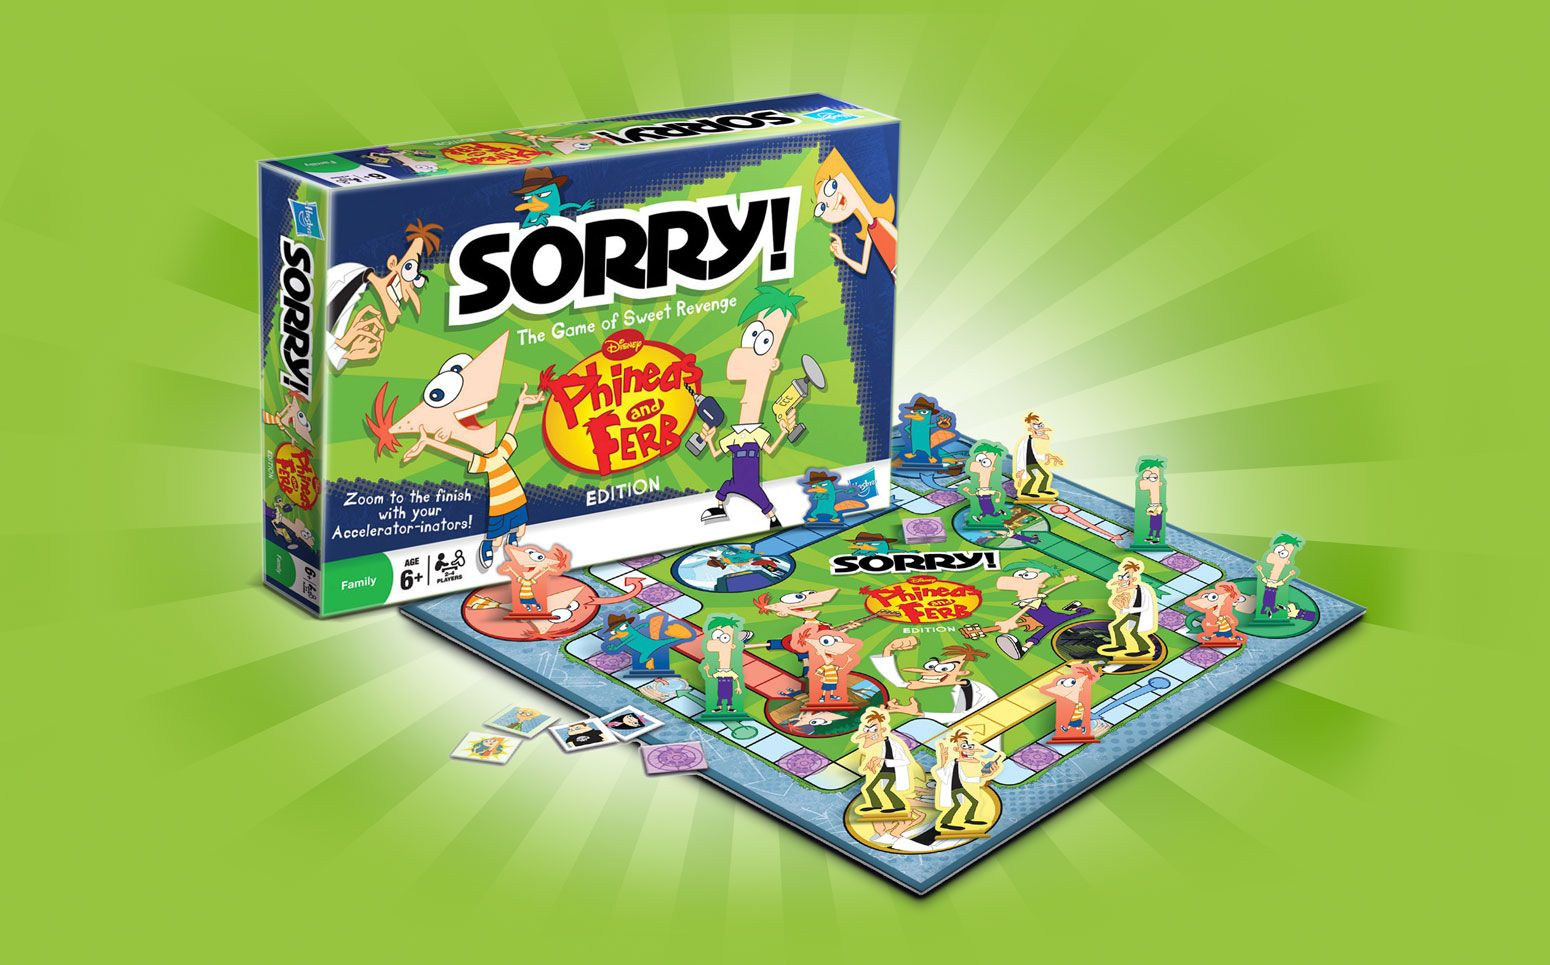 Disney Phineas and Ferb Sorry! board game Disney games